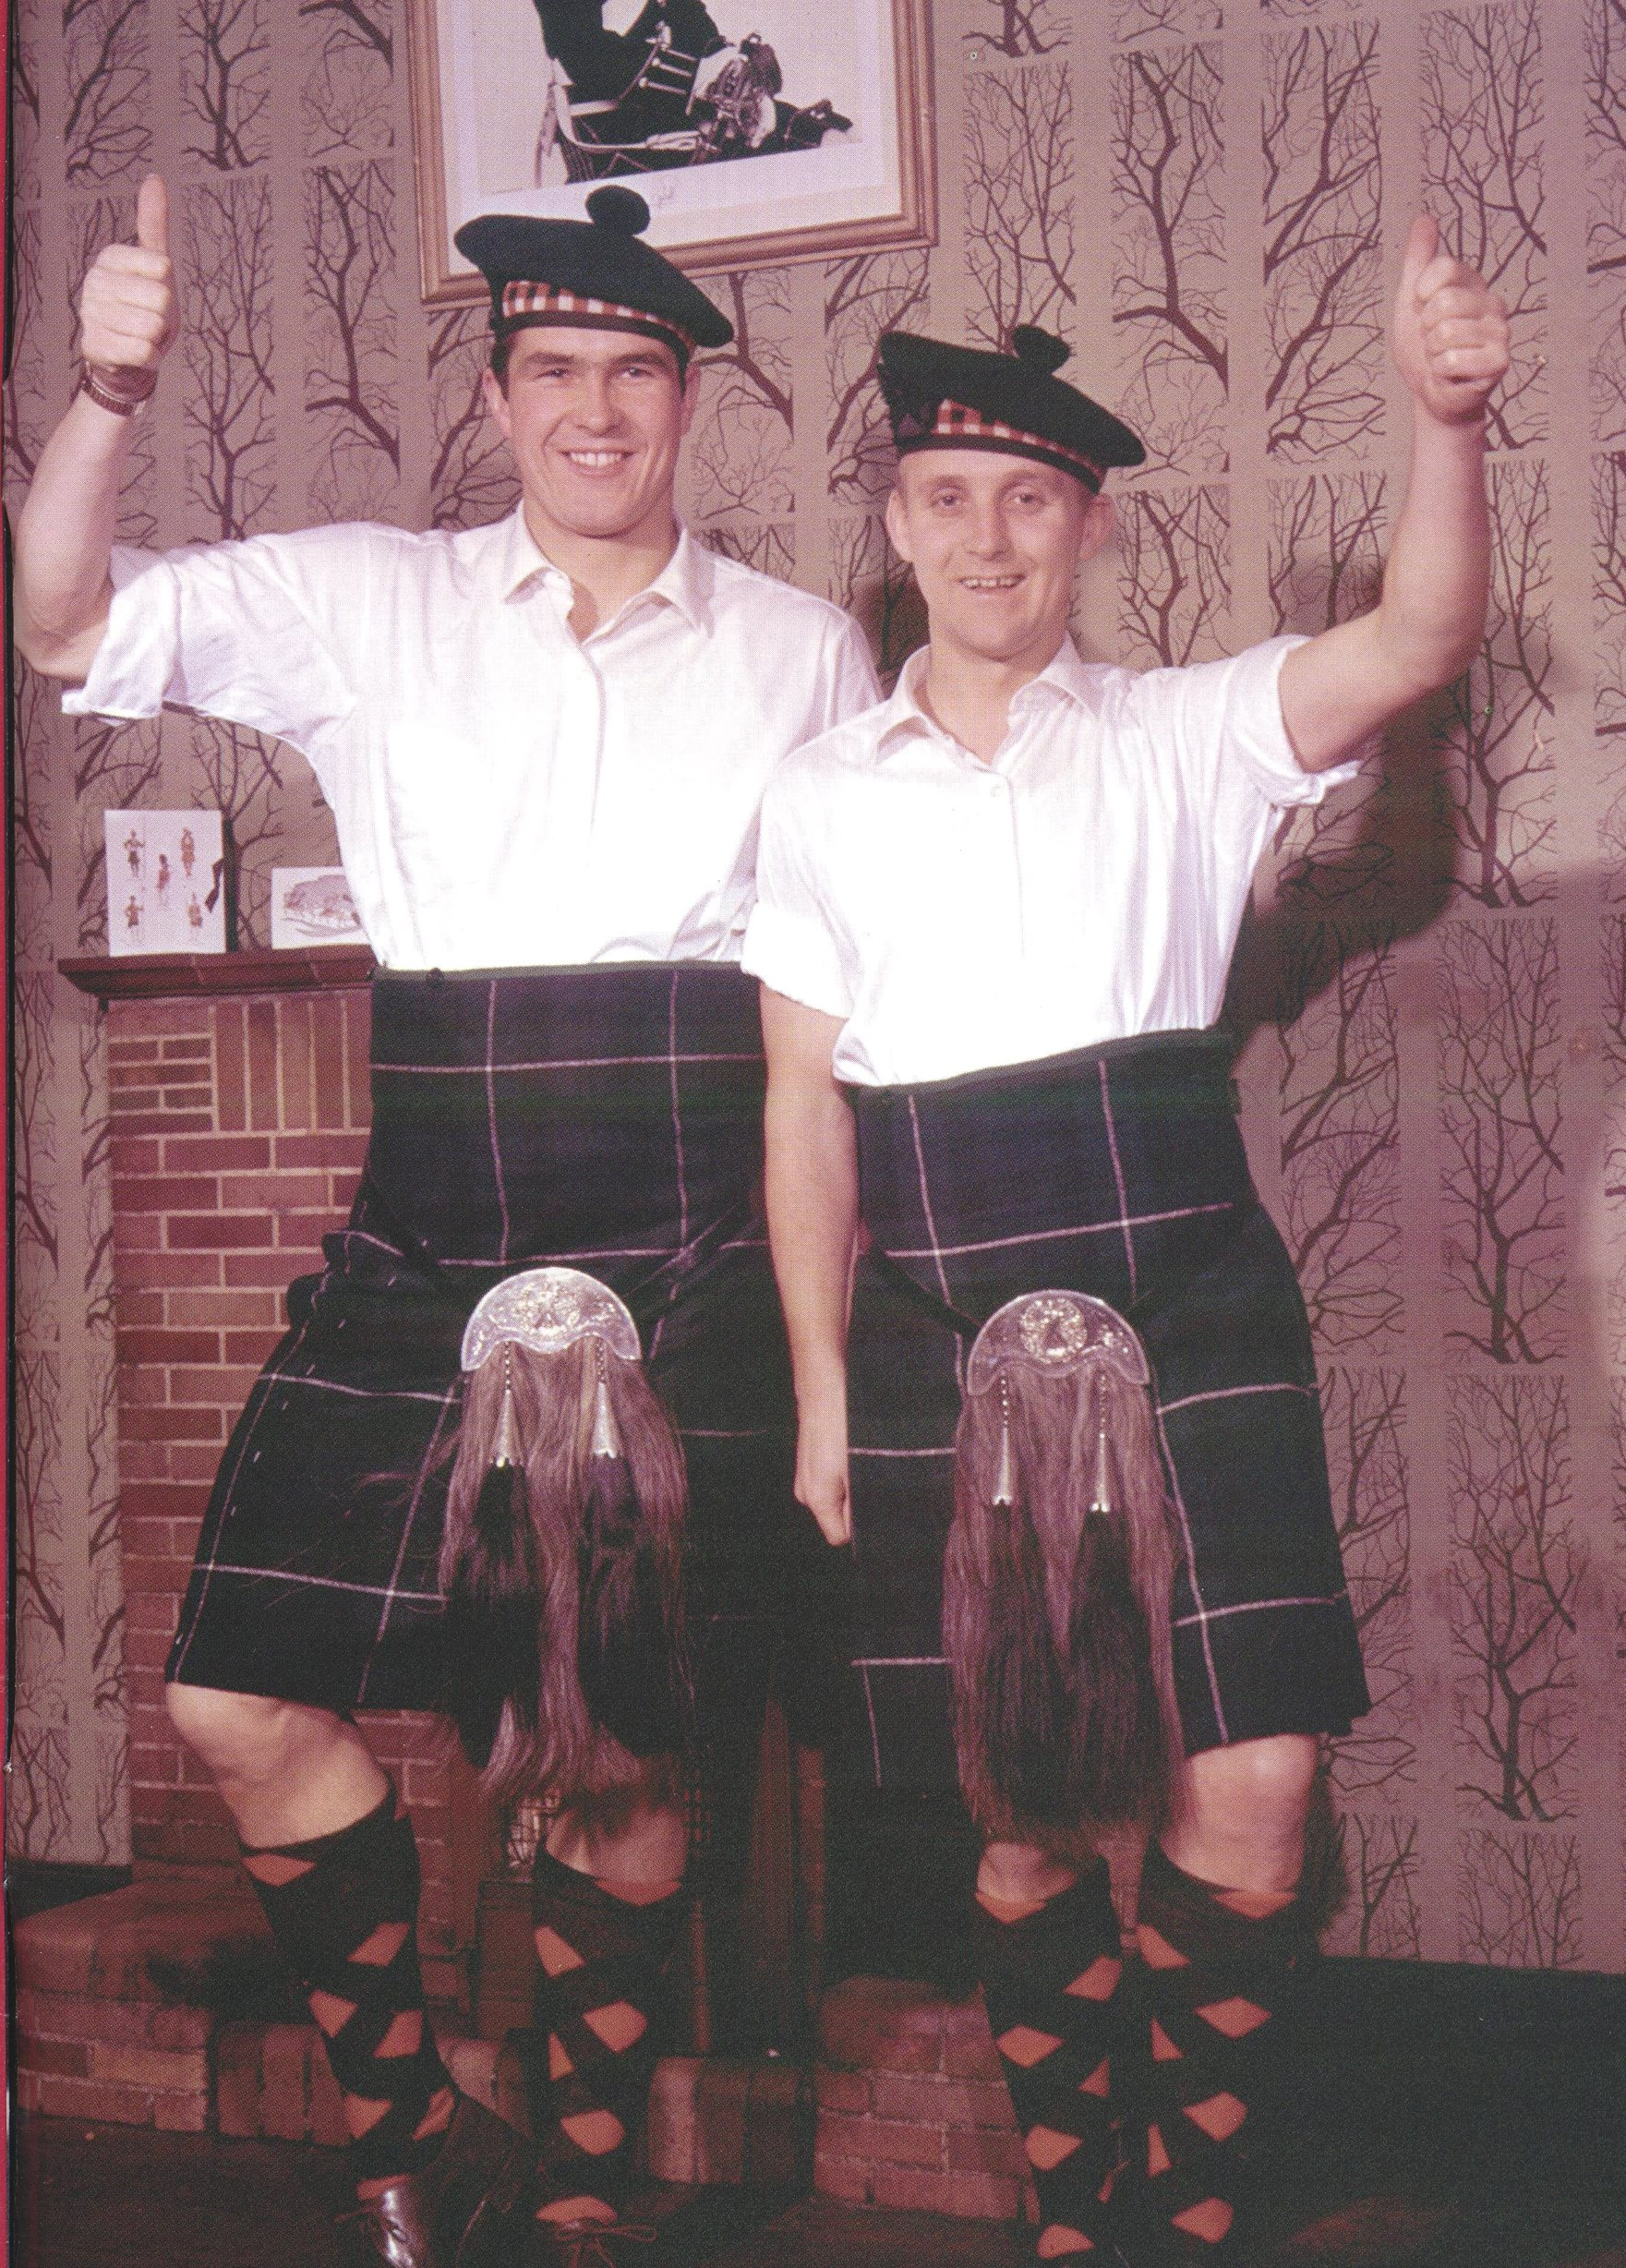 Ron Yeats and Alex Young in traditional dress in the 60s